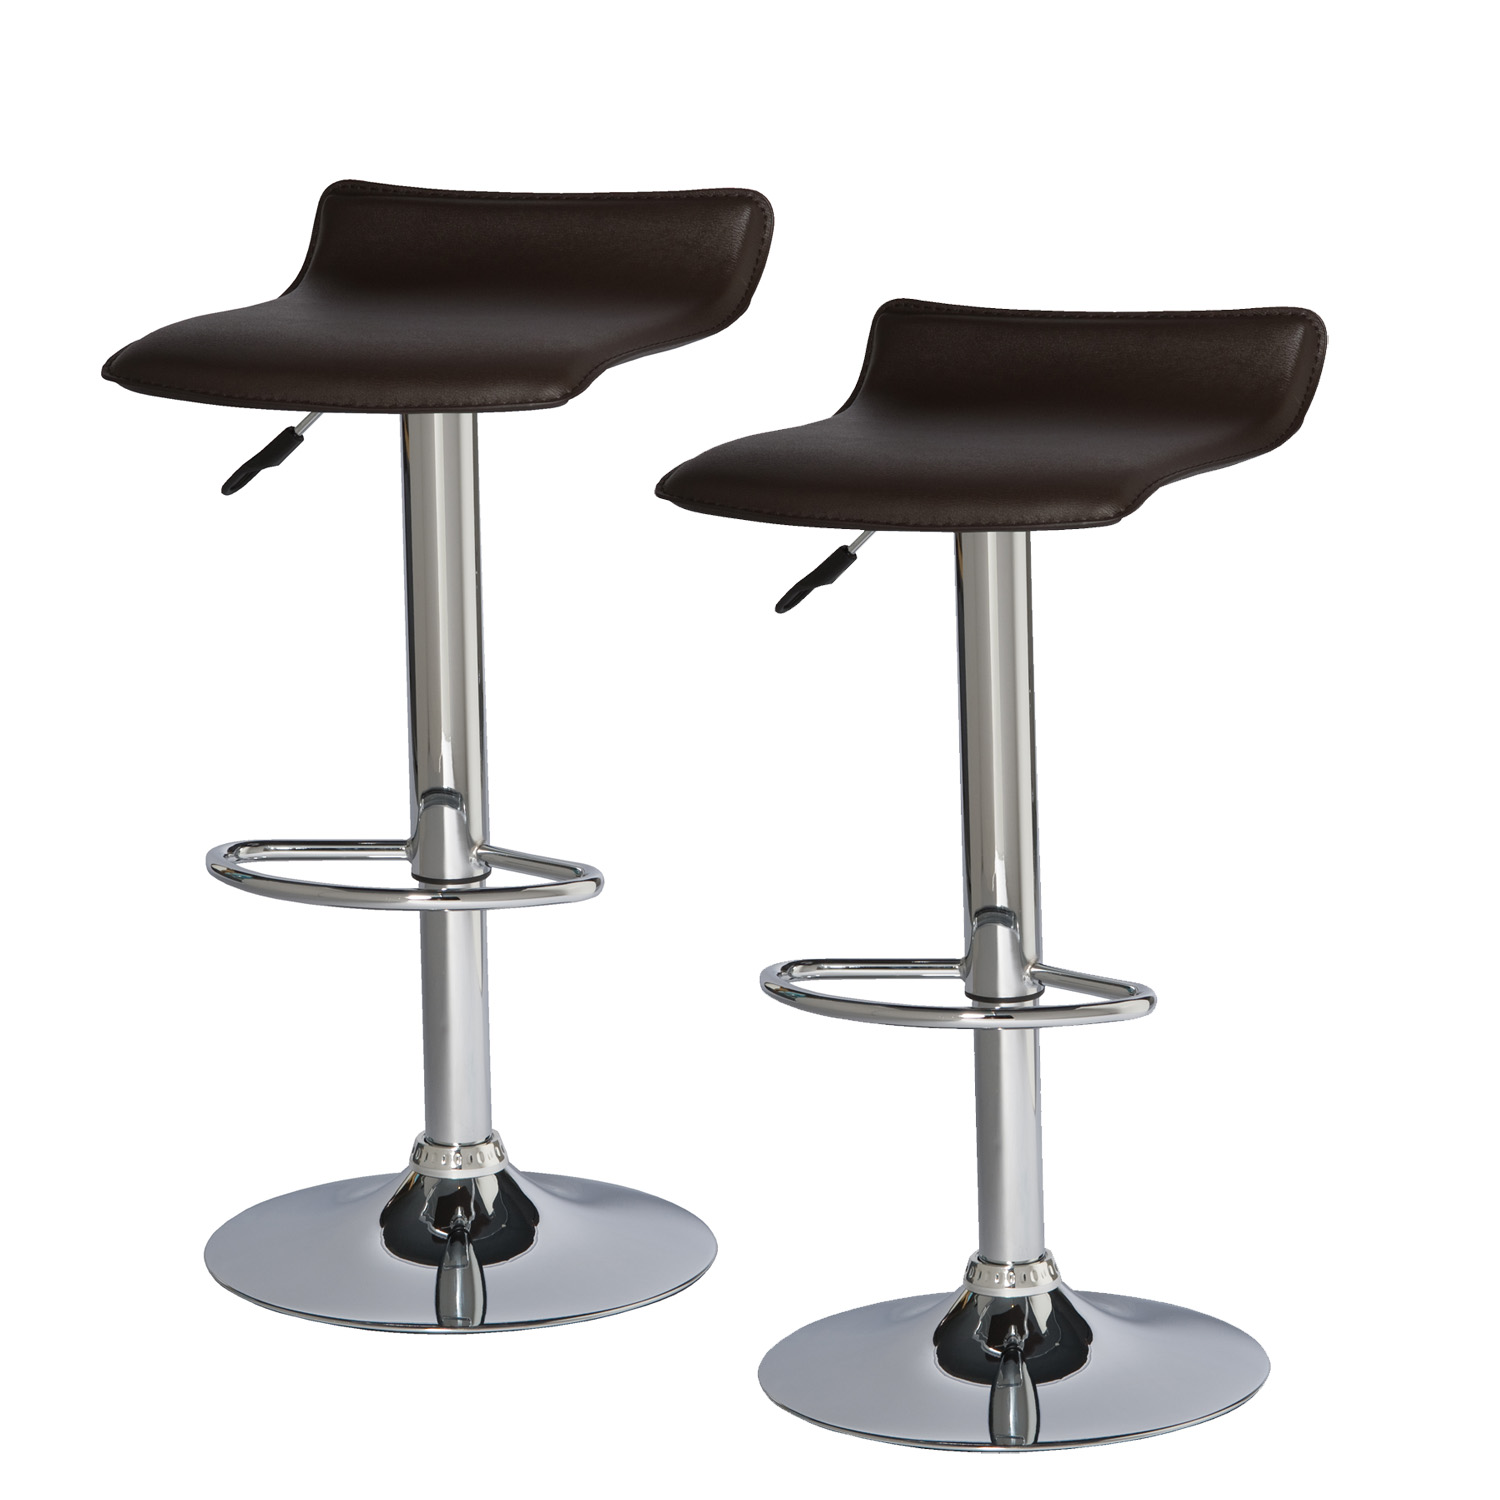 Brown Adjustable Bar Stool Leick Furniture Leick Deep Brown Adjustable Height Swivel